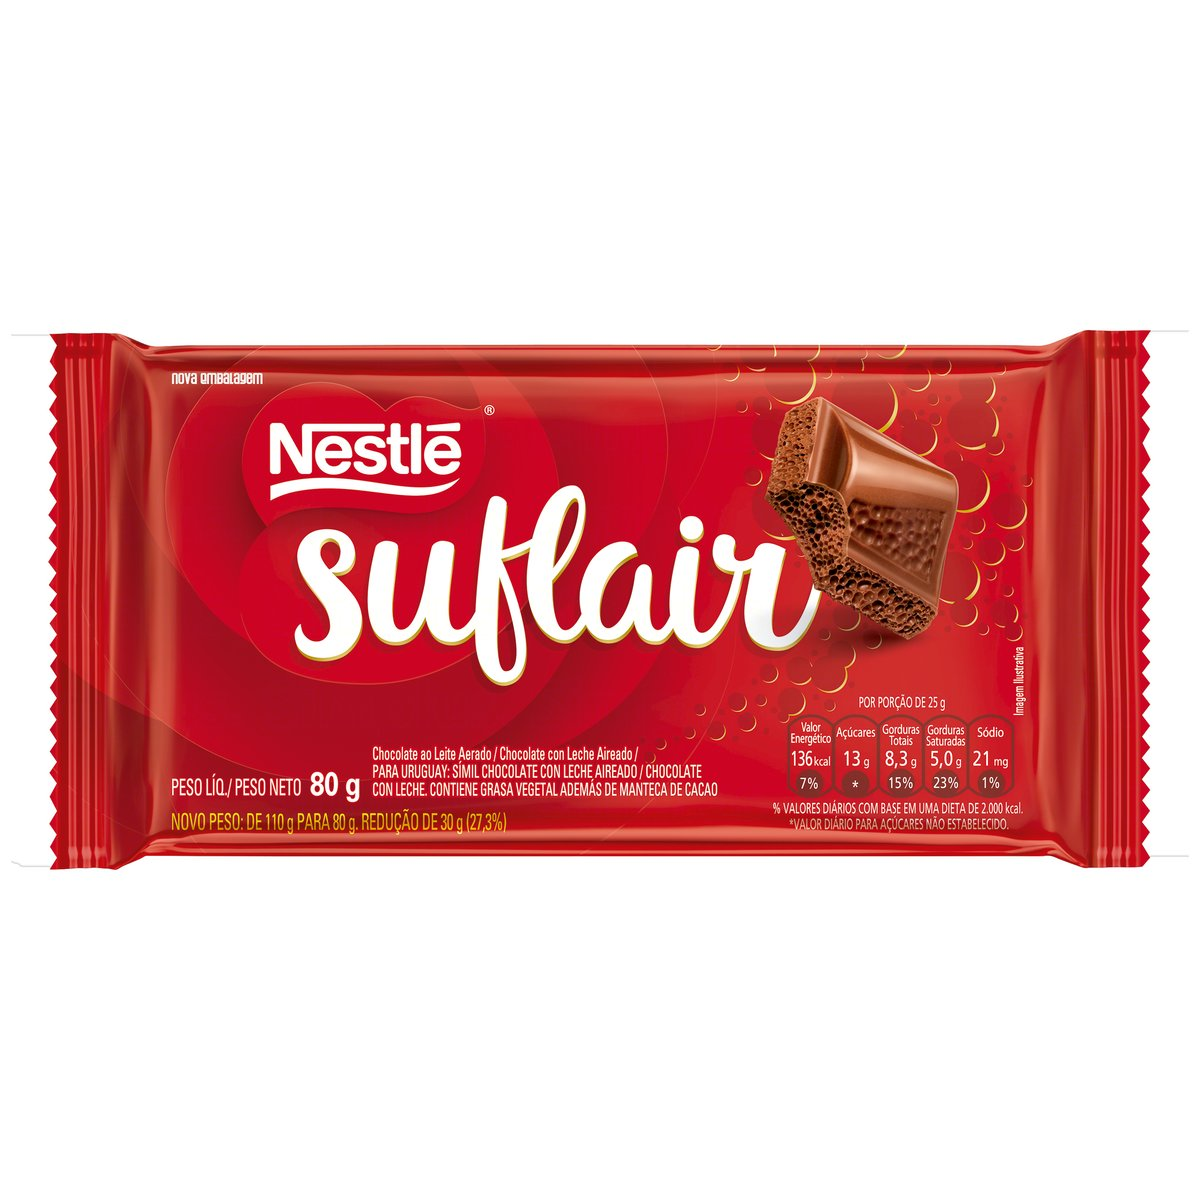 CHOCOLATE BARRA NESTLE SUFLAIR AO LEITE 80g